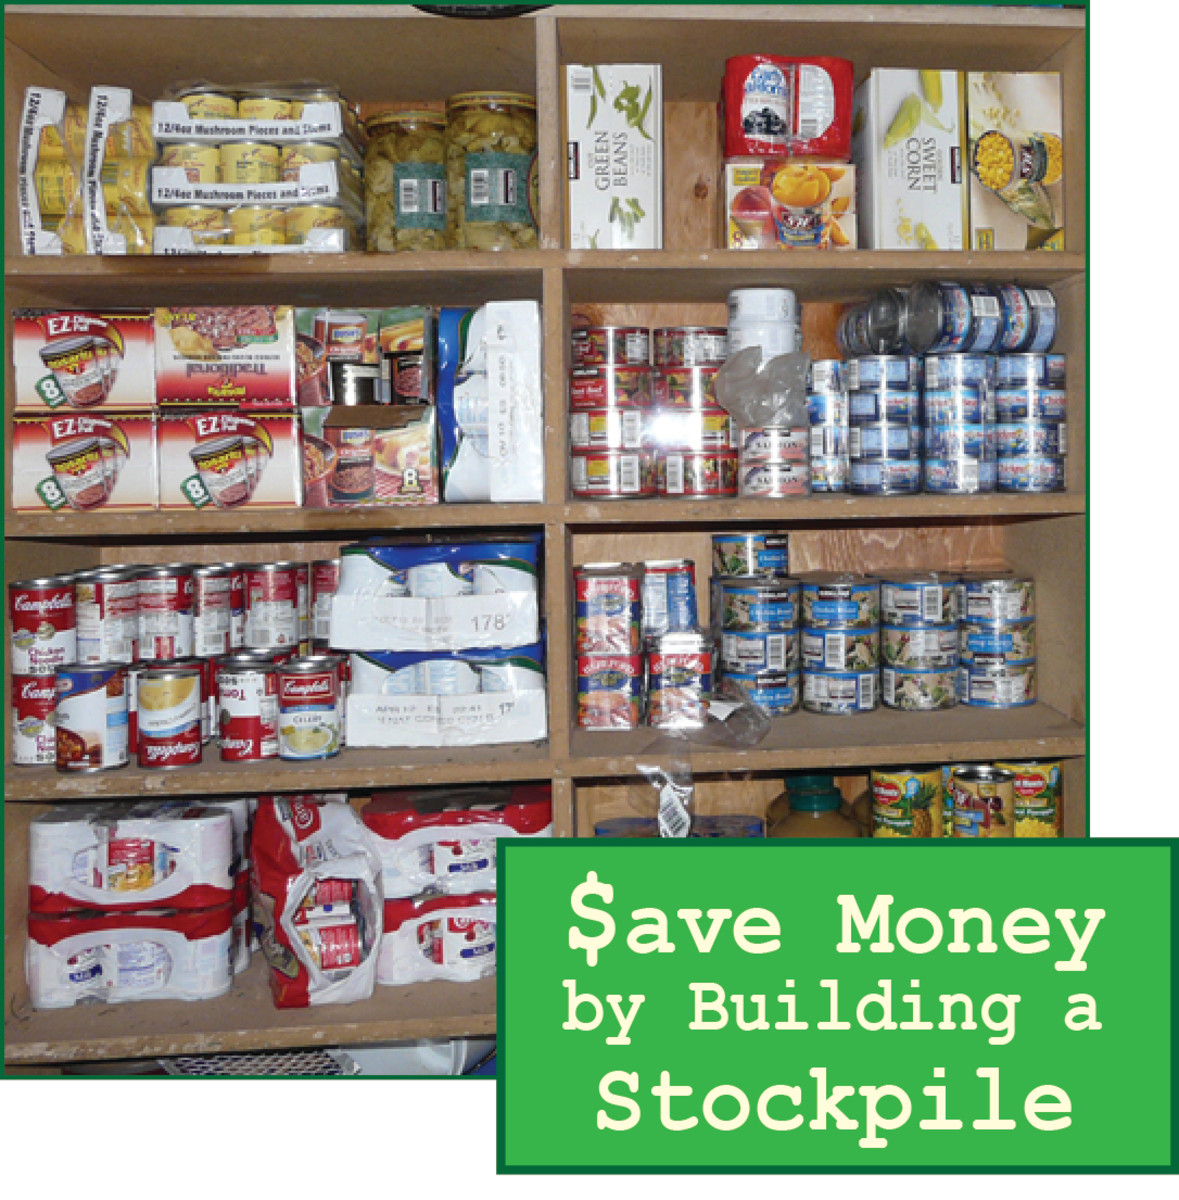 Frugal Living:  Stockpiling to Save Money and Prepare for Disaster